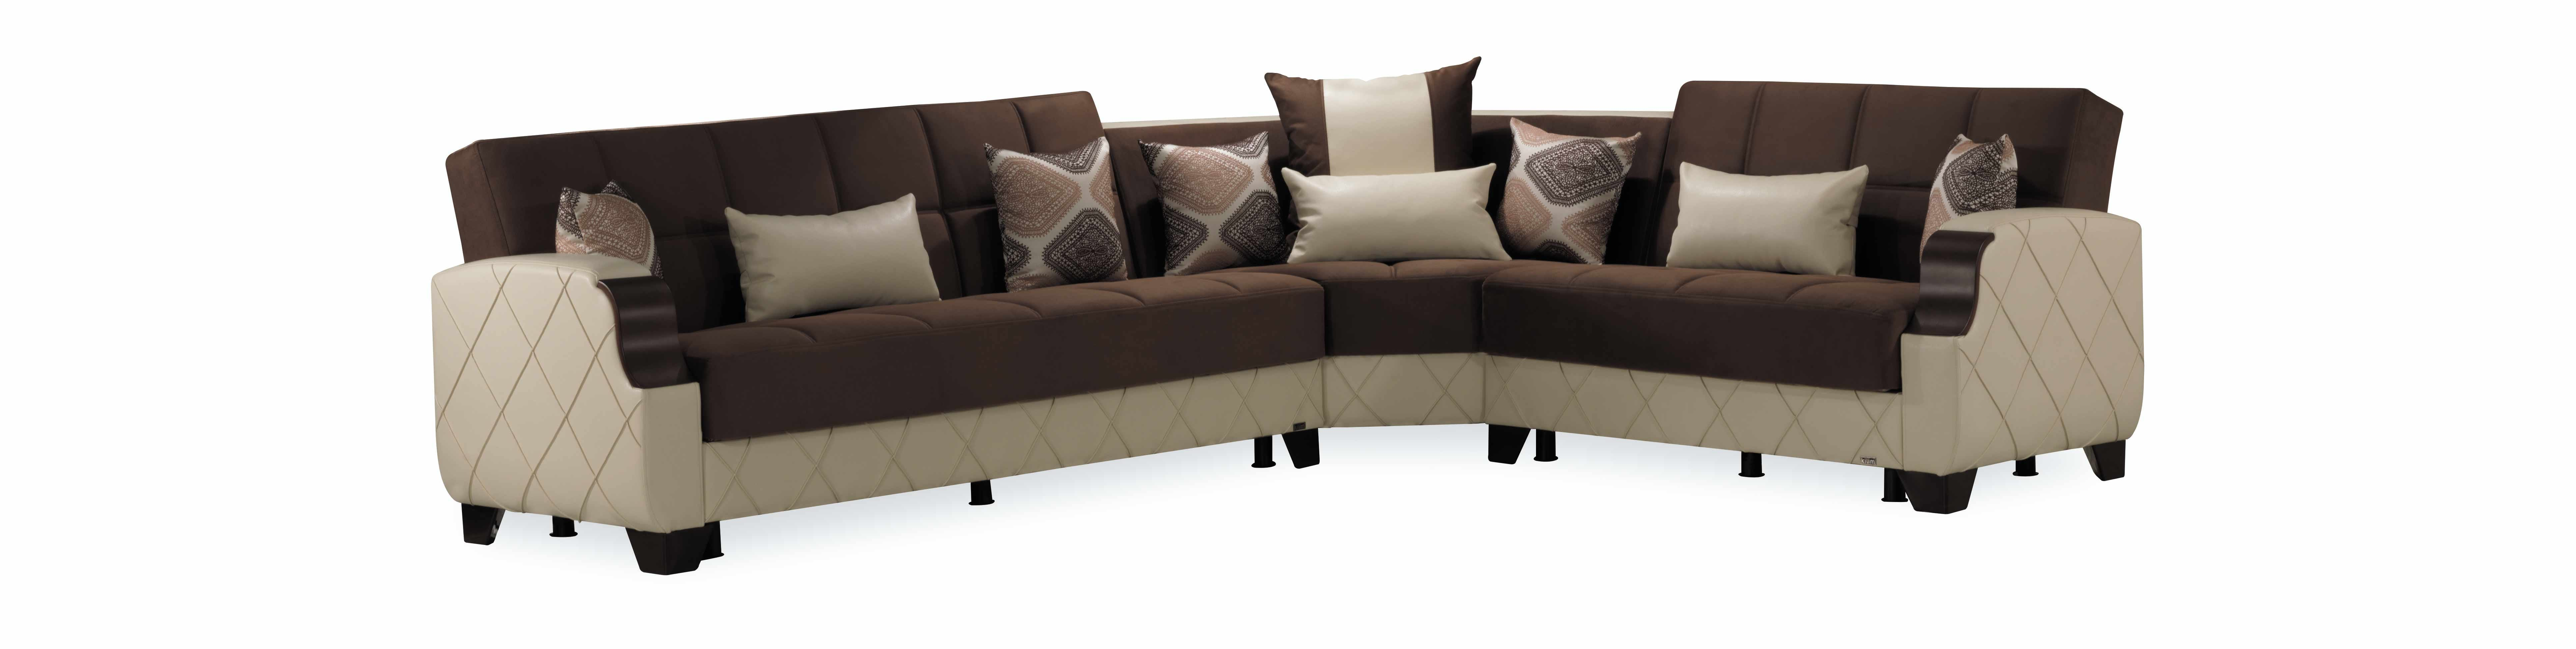 Molina Dark Brown/Cream Sectional Sofa by Casamode